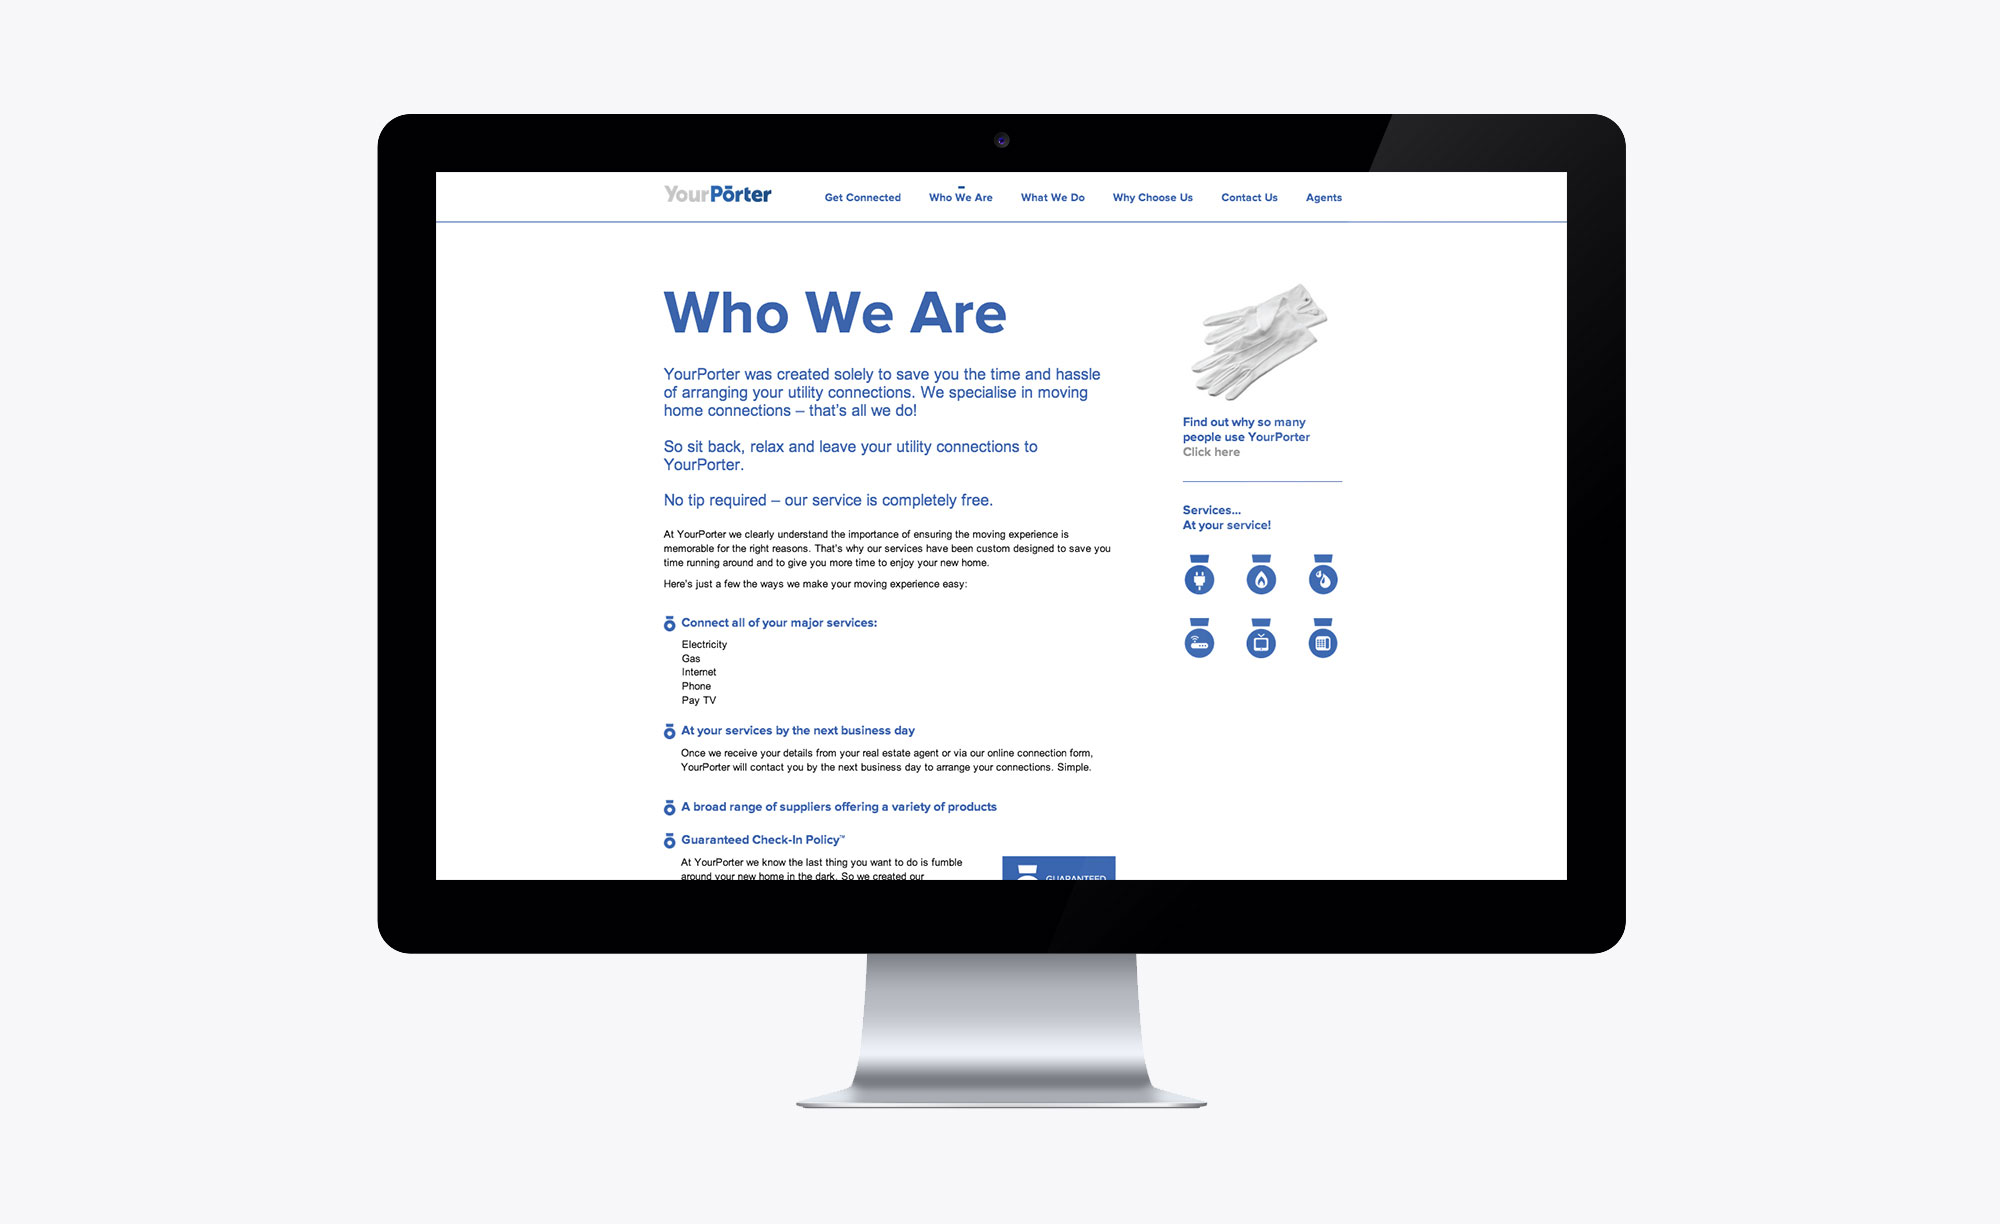 Company page on the Your Porter website